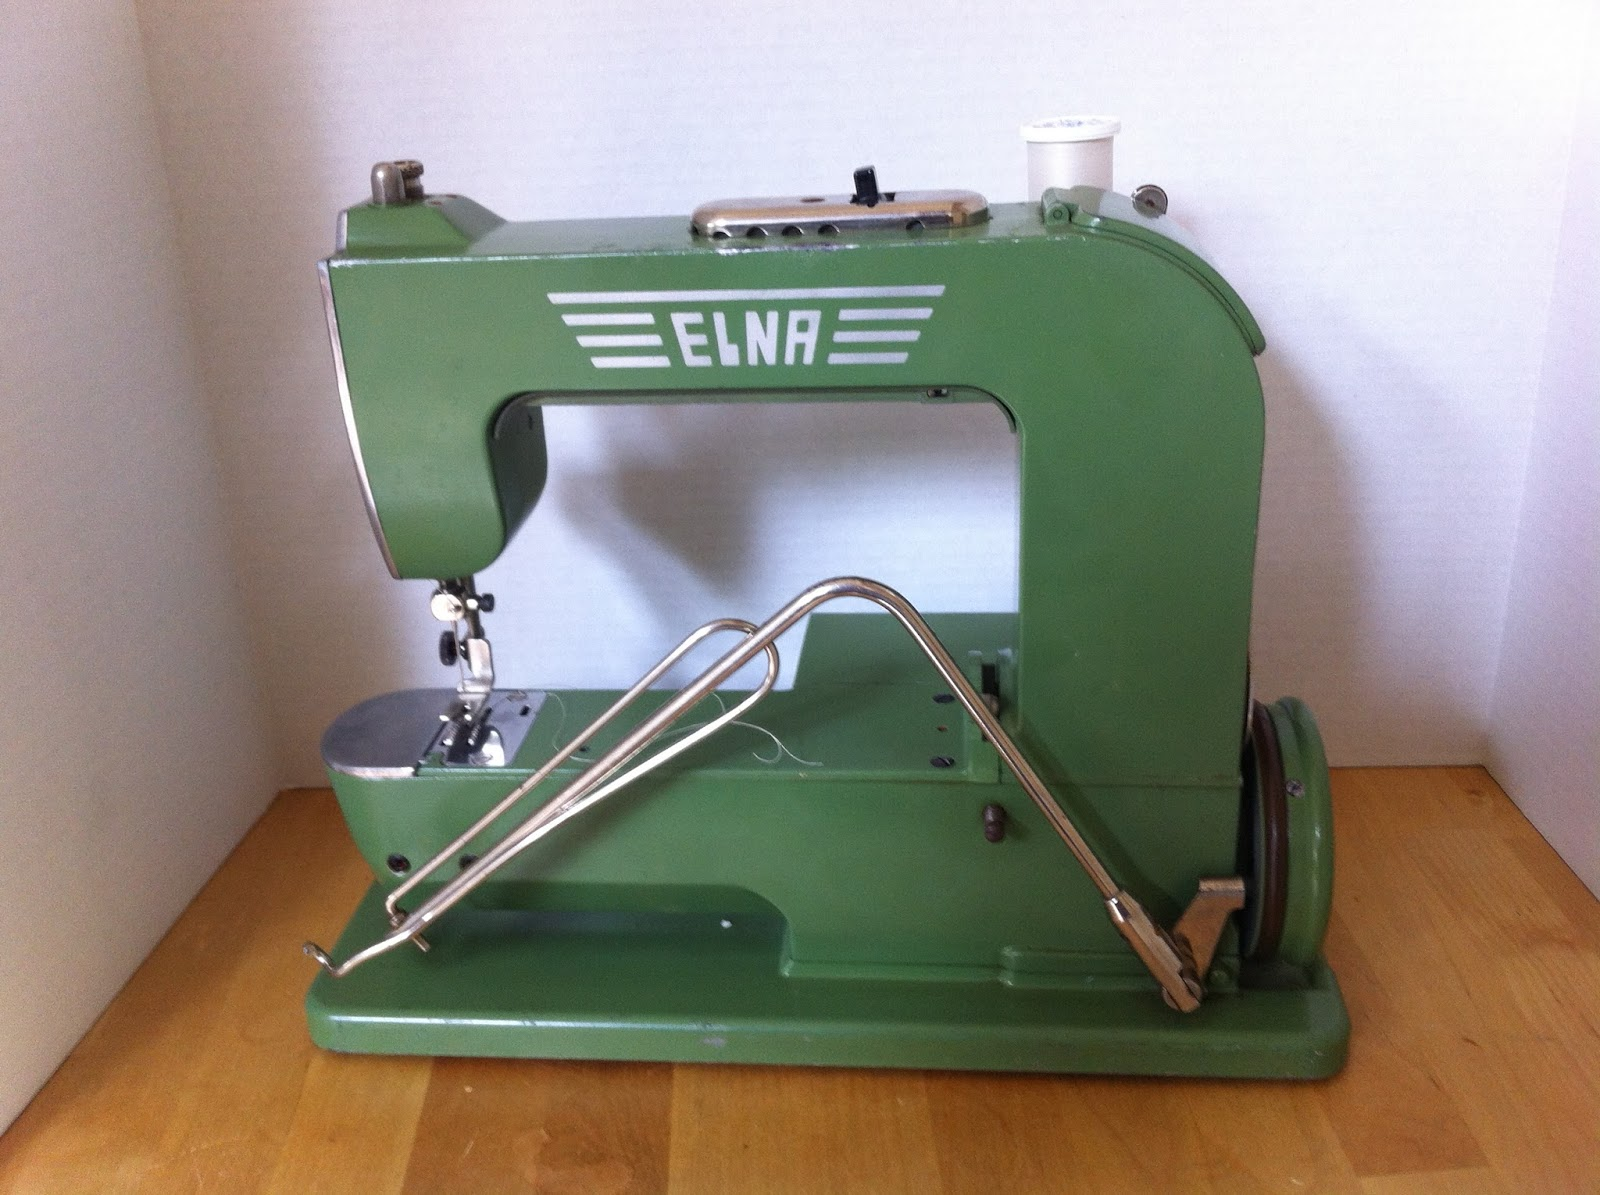 I kept reading and looking at smaller, hopefully more lightweight machines.  I soon fell in love with the Elna Grasshopper, and hunted one down.